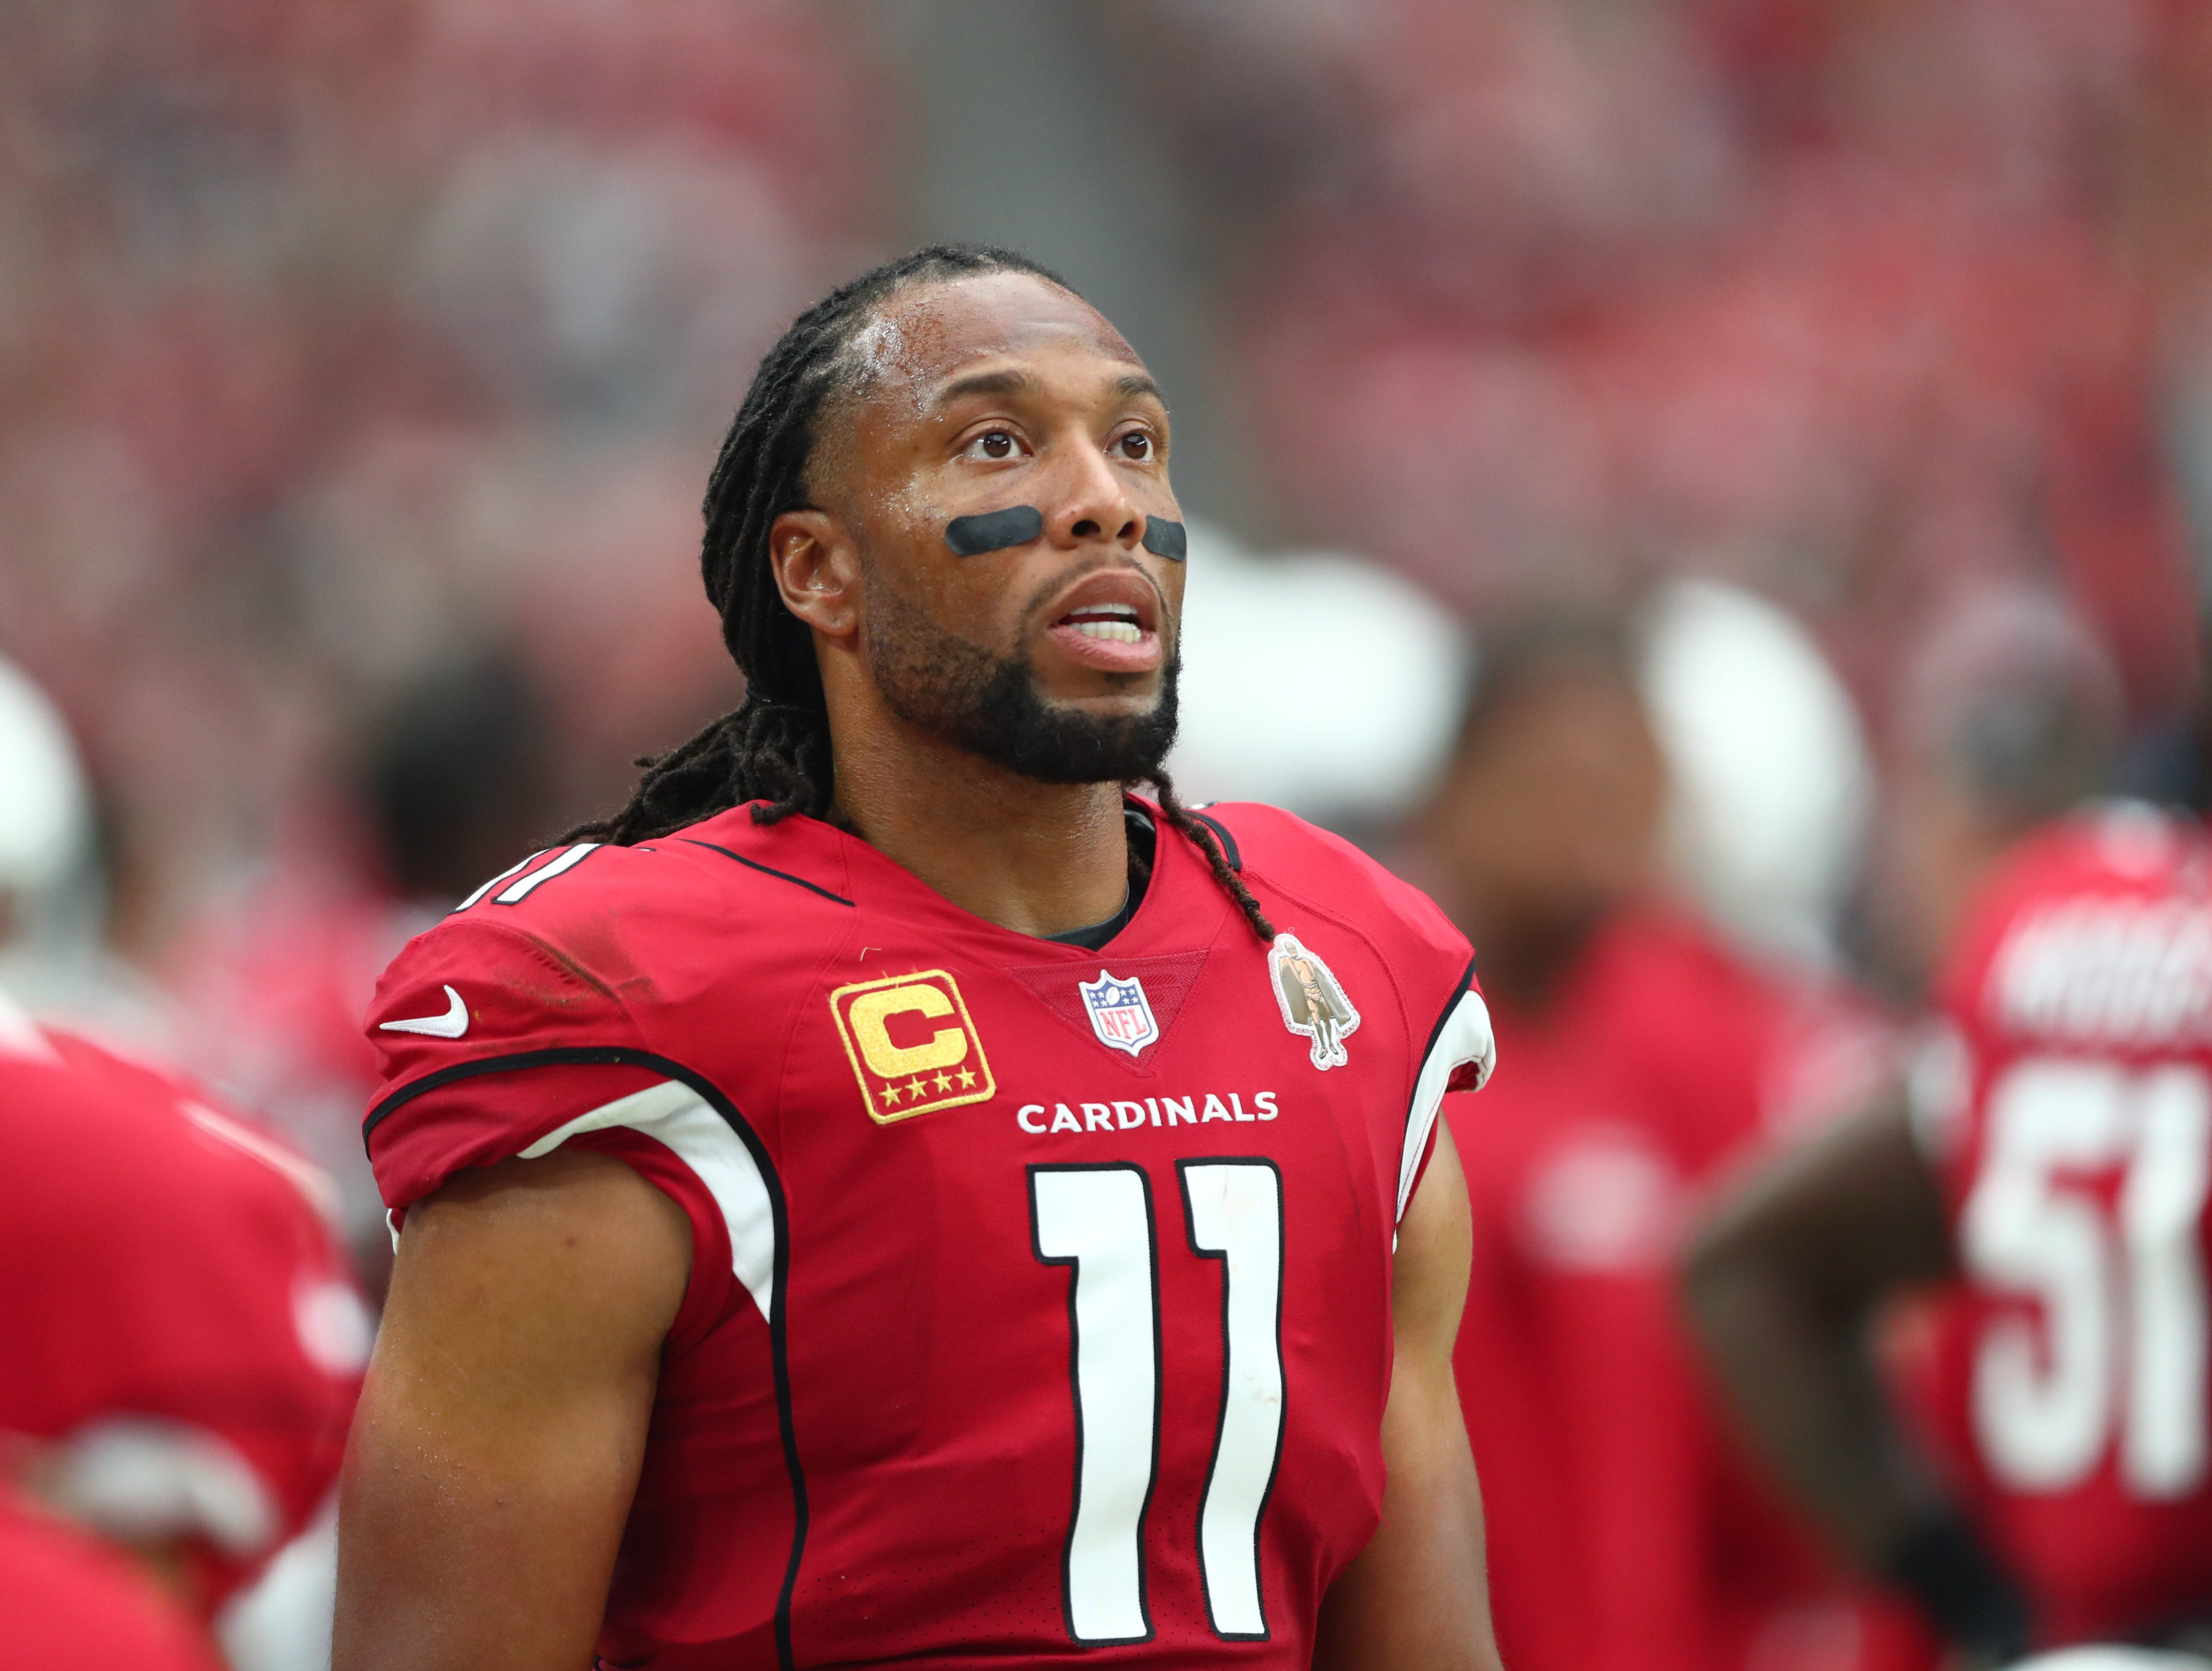 ESPN's Max Kellerman question's Larry Fitzgerald's qualifications for Hall of Fame